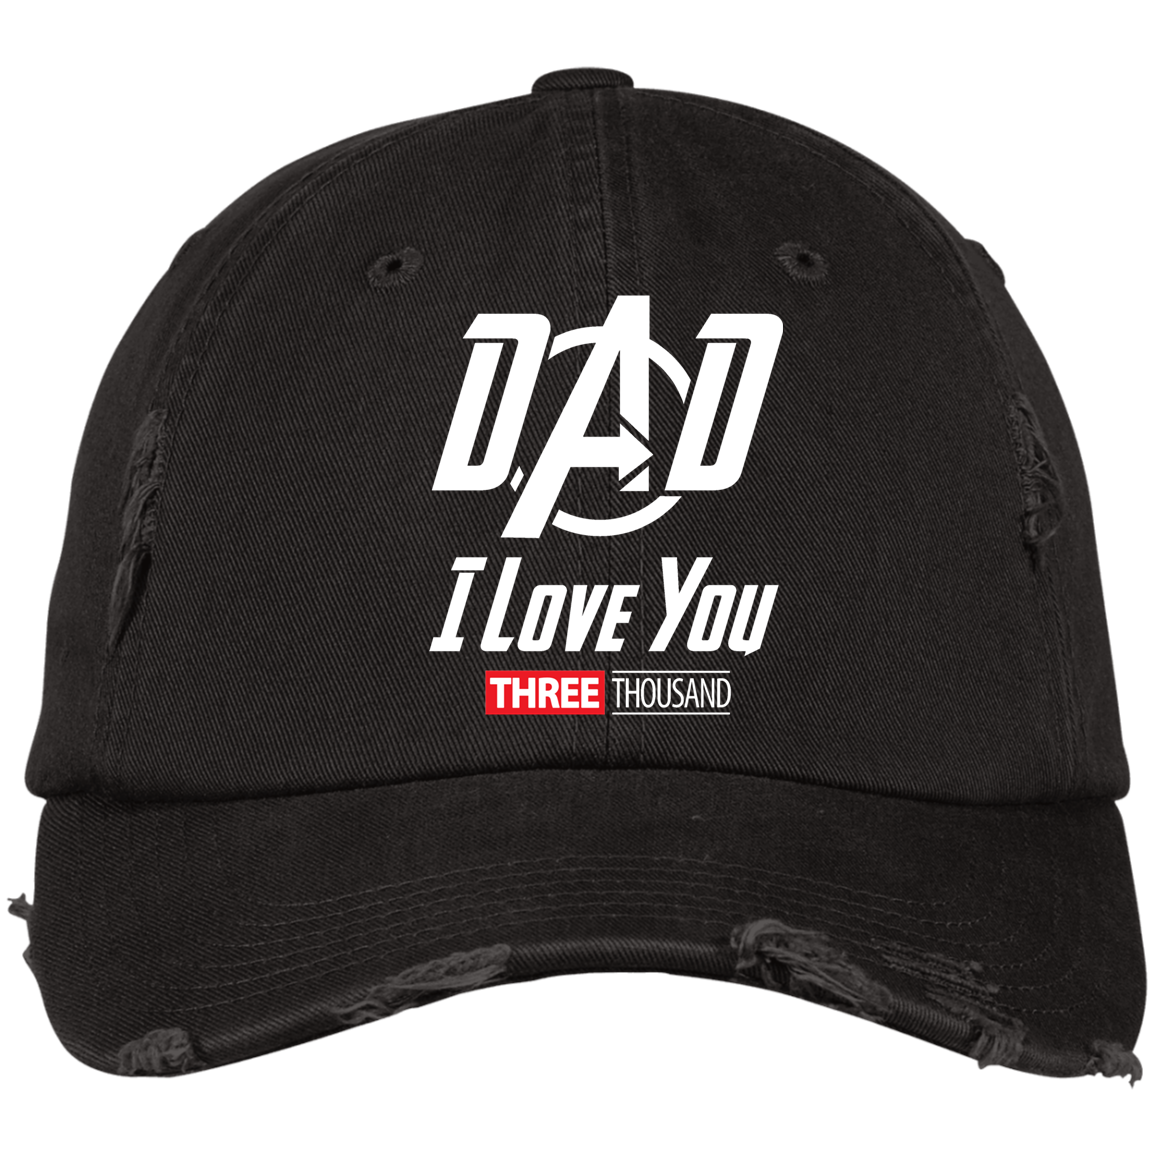 Dad I Love You Three Thousand - Embroidered Distressed Cap